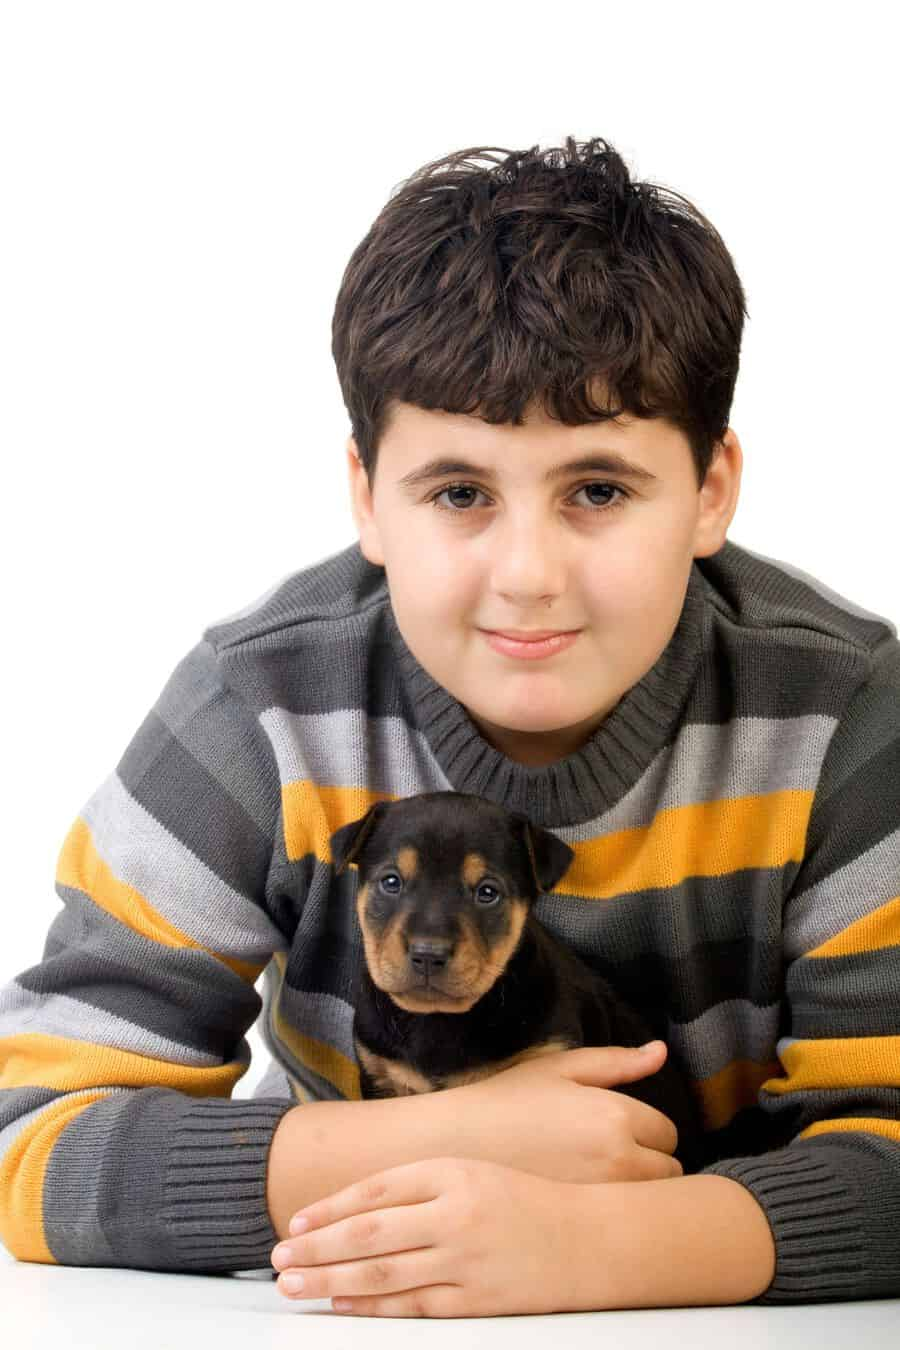 Are Rottweiler Puppies Good with Kids?